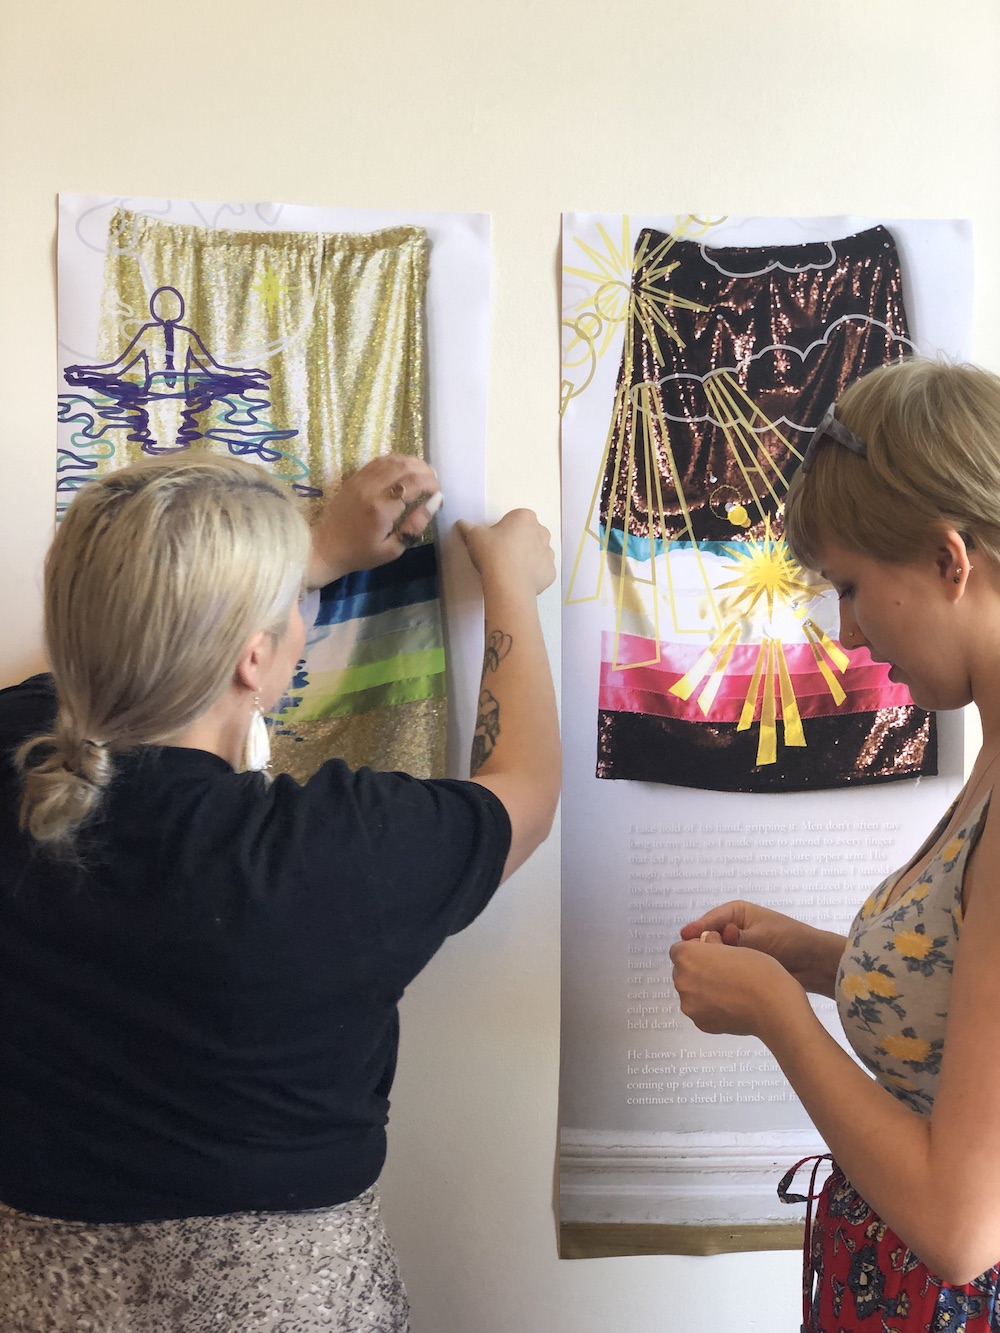 Two women hang tapestries on a wall